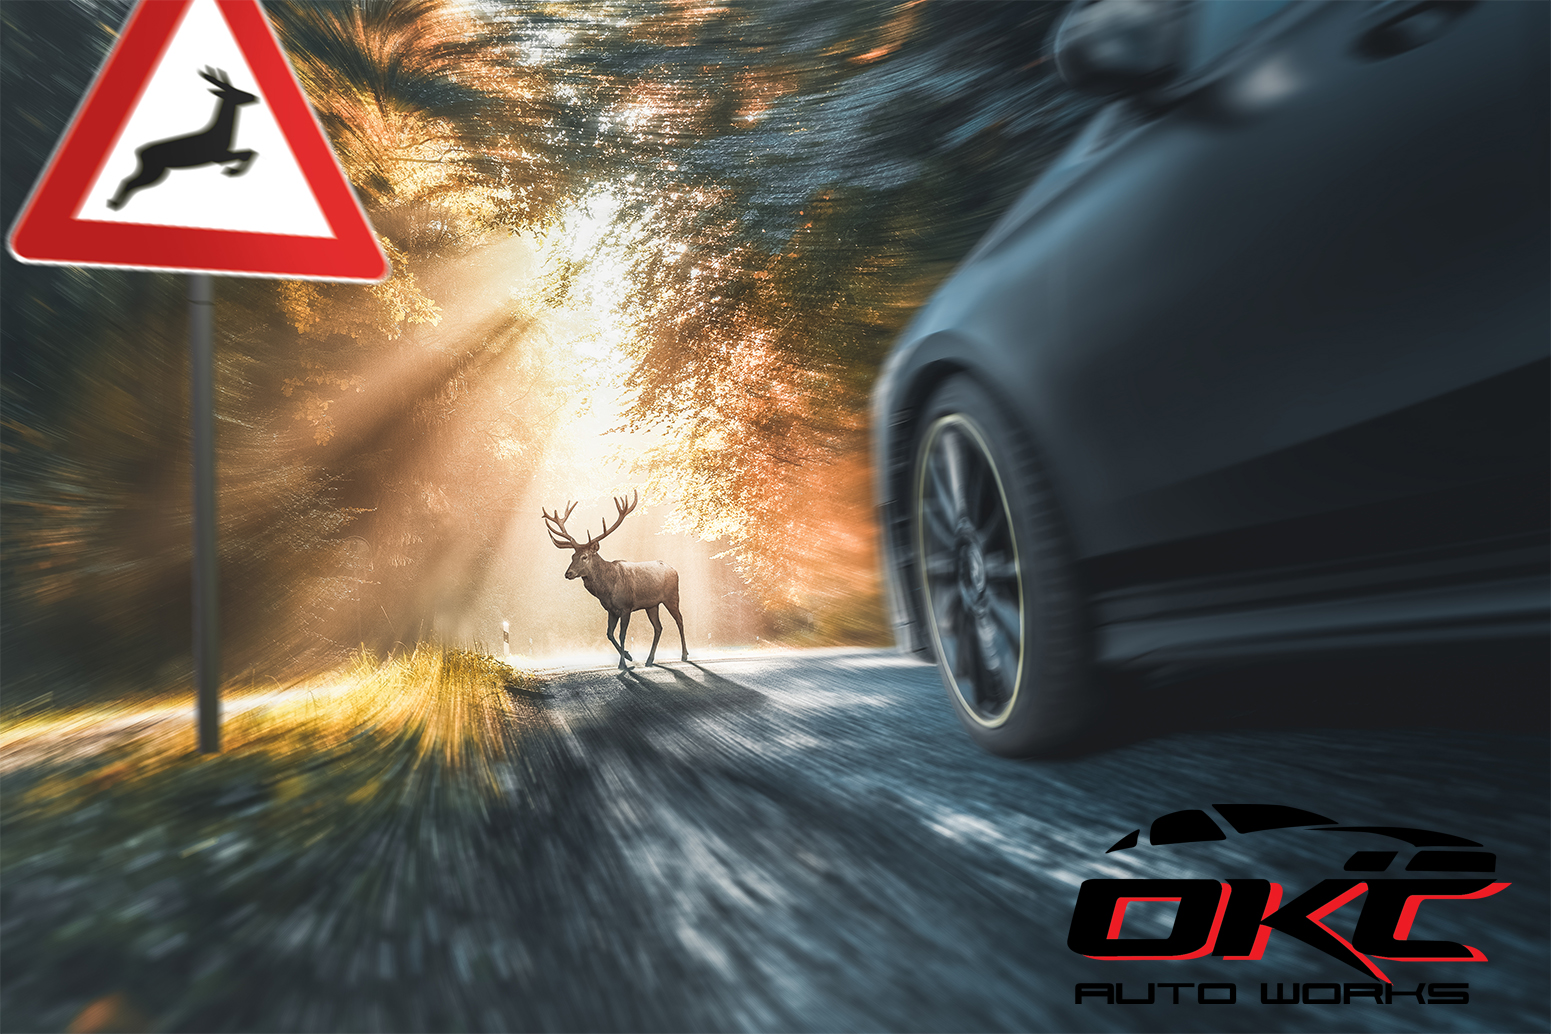 deer related auto accidents, deer hits, deer-related car crash, watch our for deer when driving,, how to avoid hitting a deer, how to hit a deer, what to do if you have hit a deer